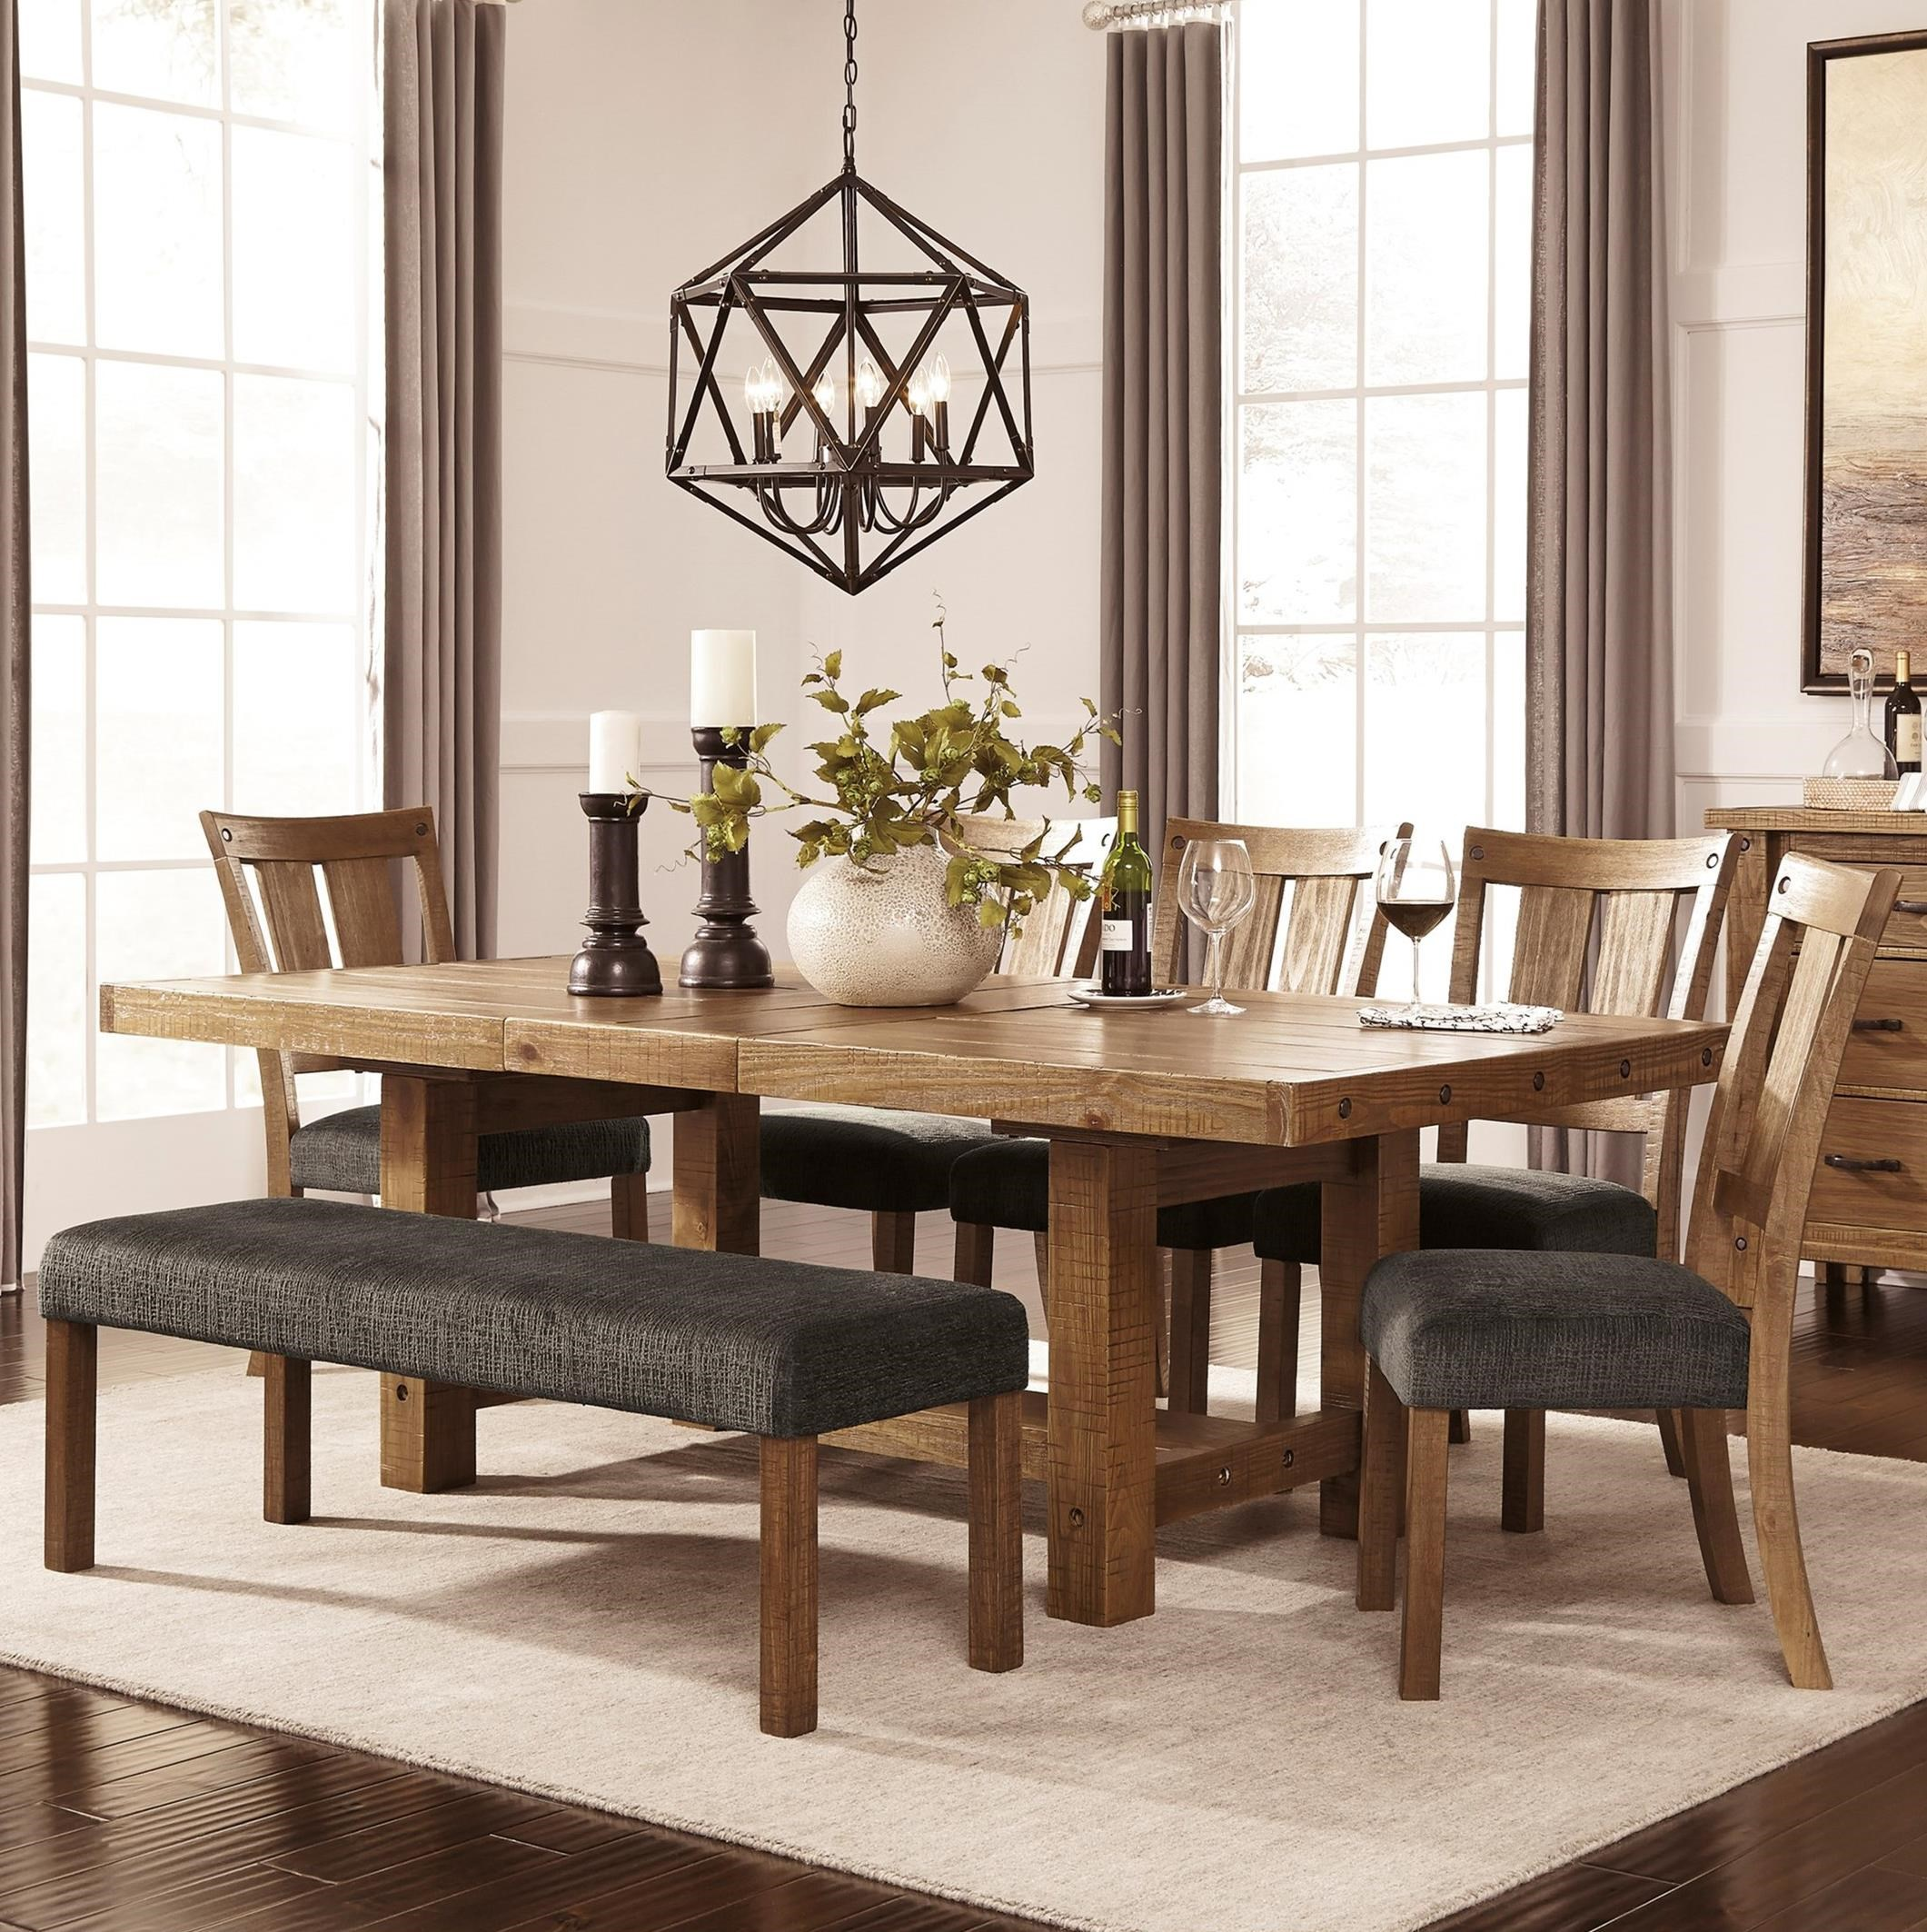 Dining Room Furniture With Bench: 7 Piece Table & Chair Set With Bench By Signature Design